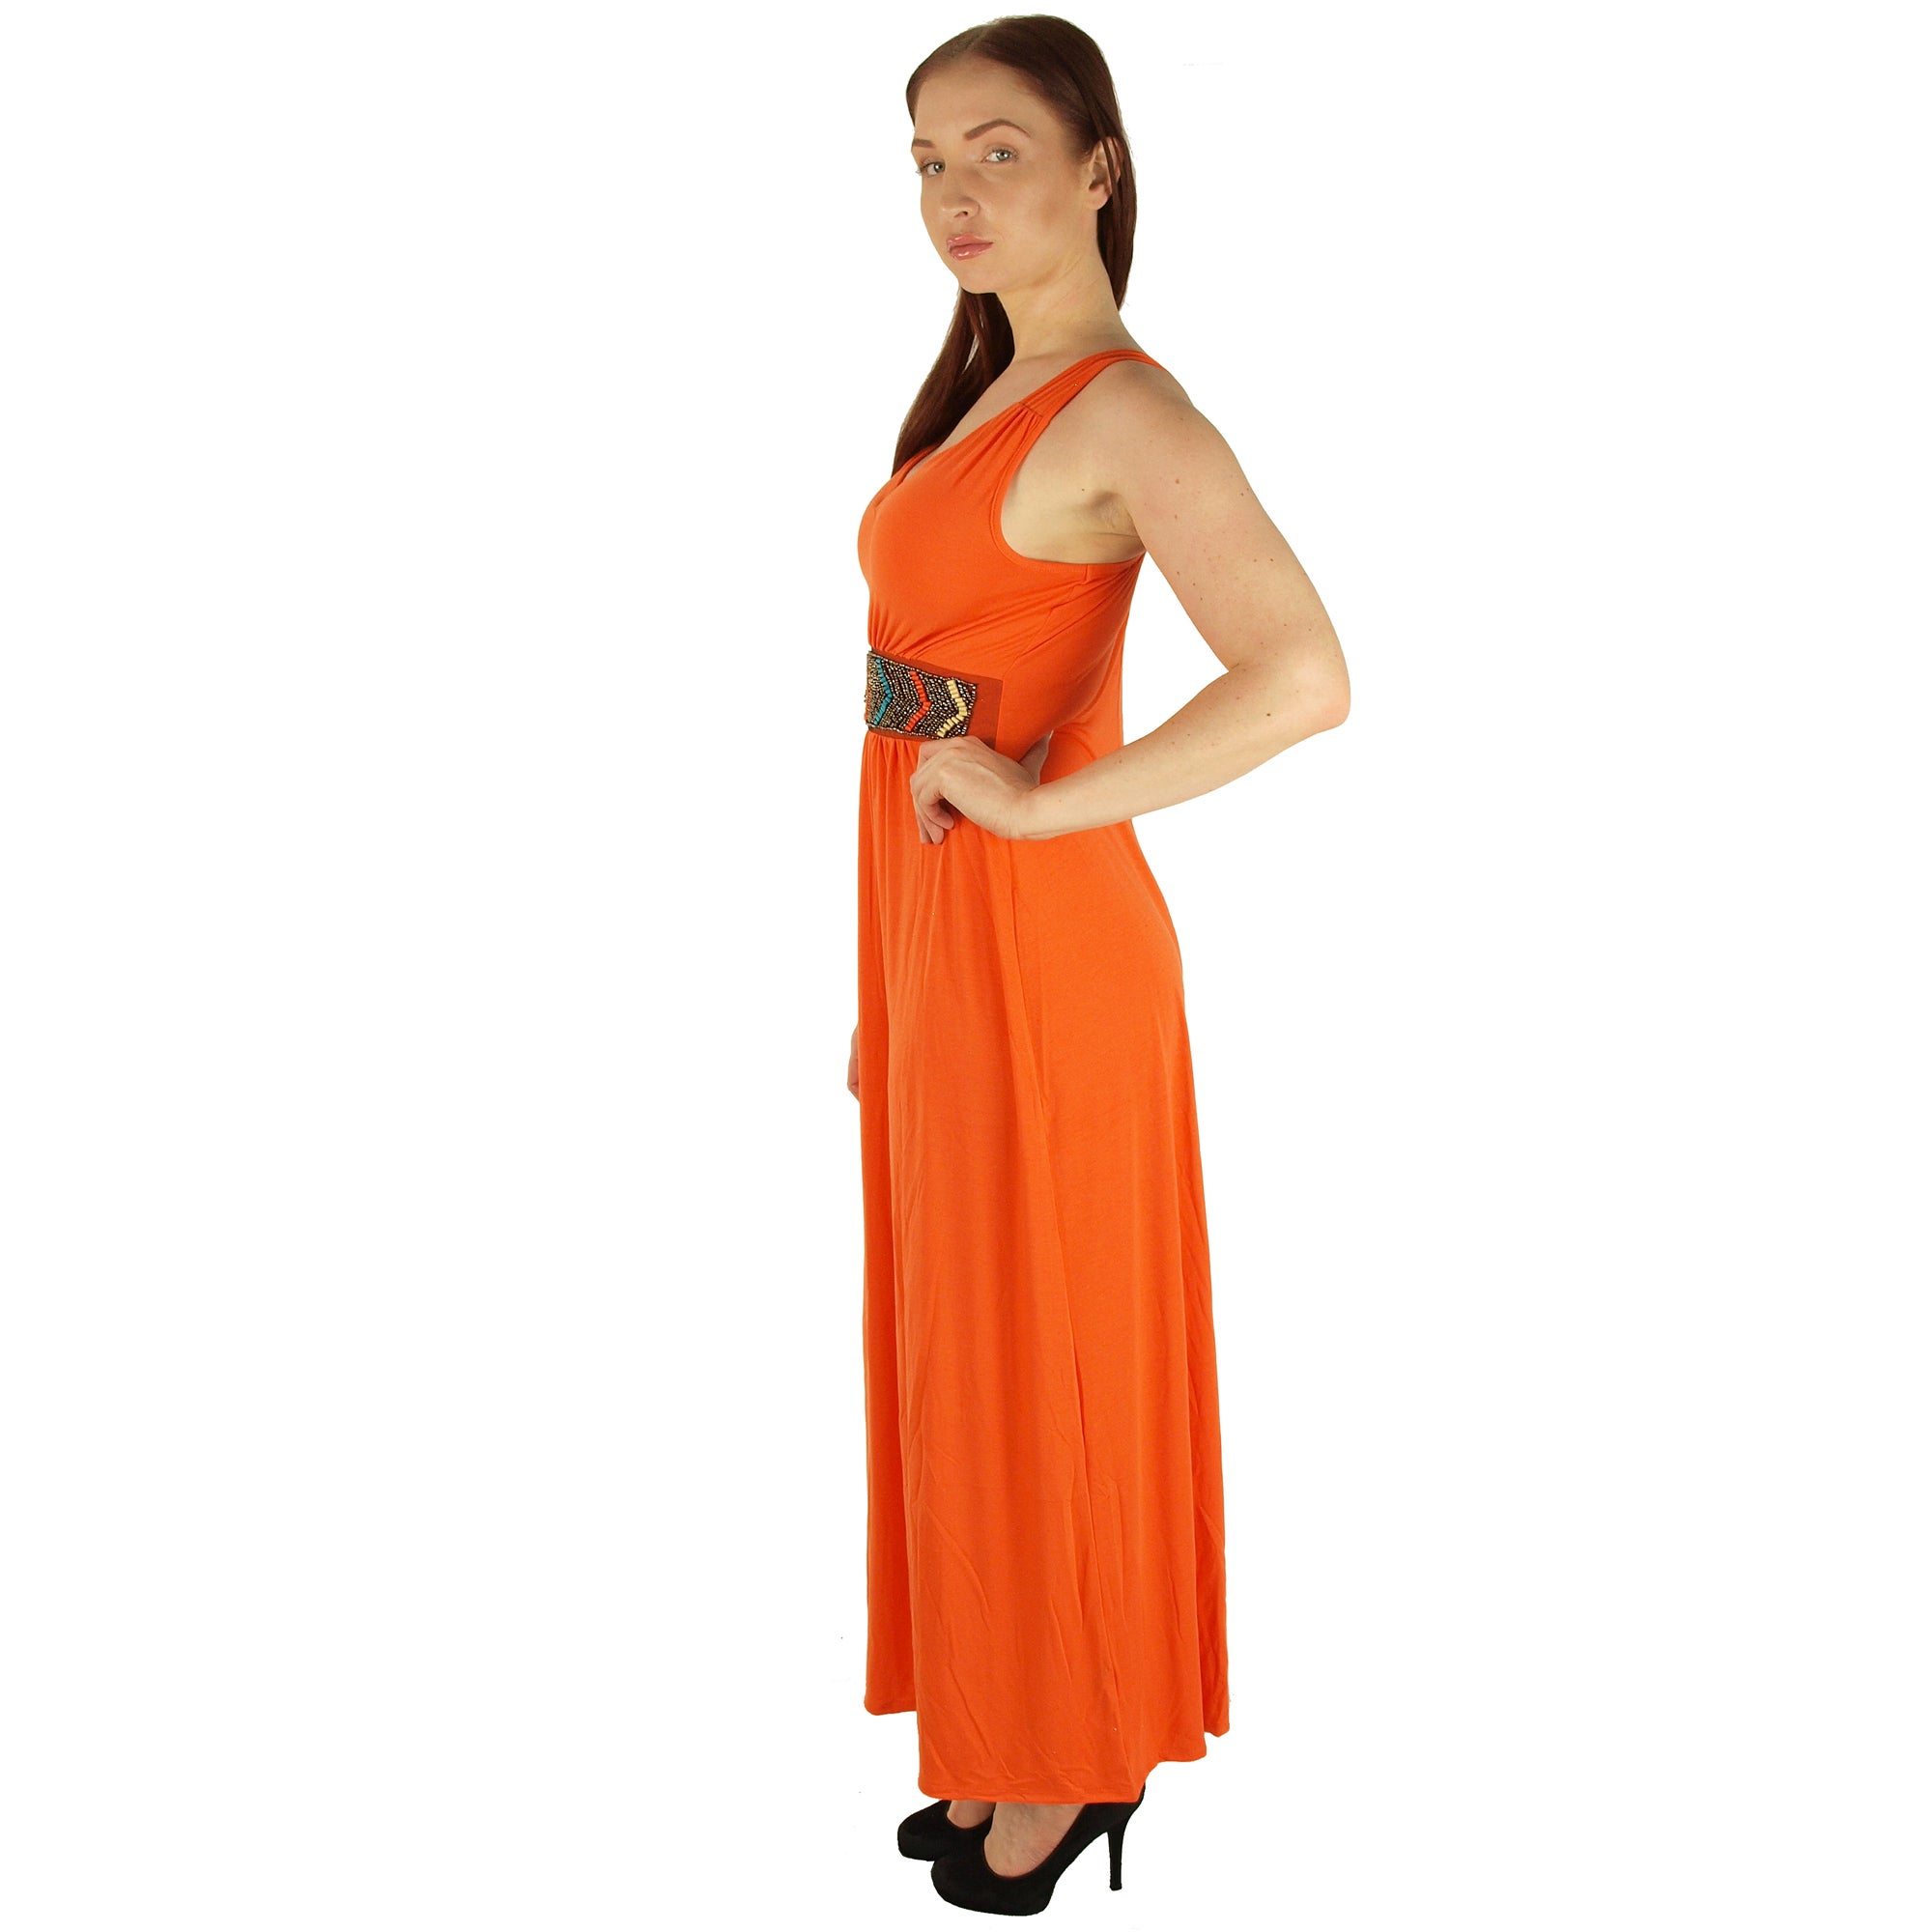 Special One Women\'s Orange Polyester/Rayon/Spandex Super Plus Size Maxi  Dress With Beaded Waist